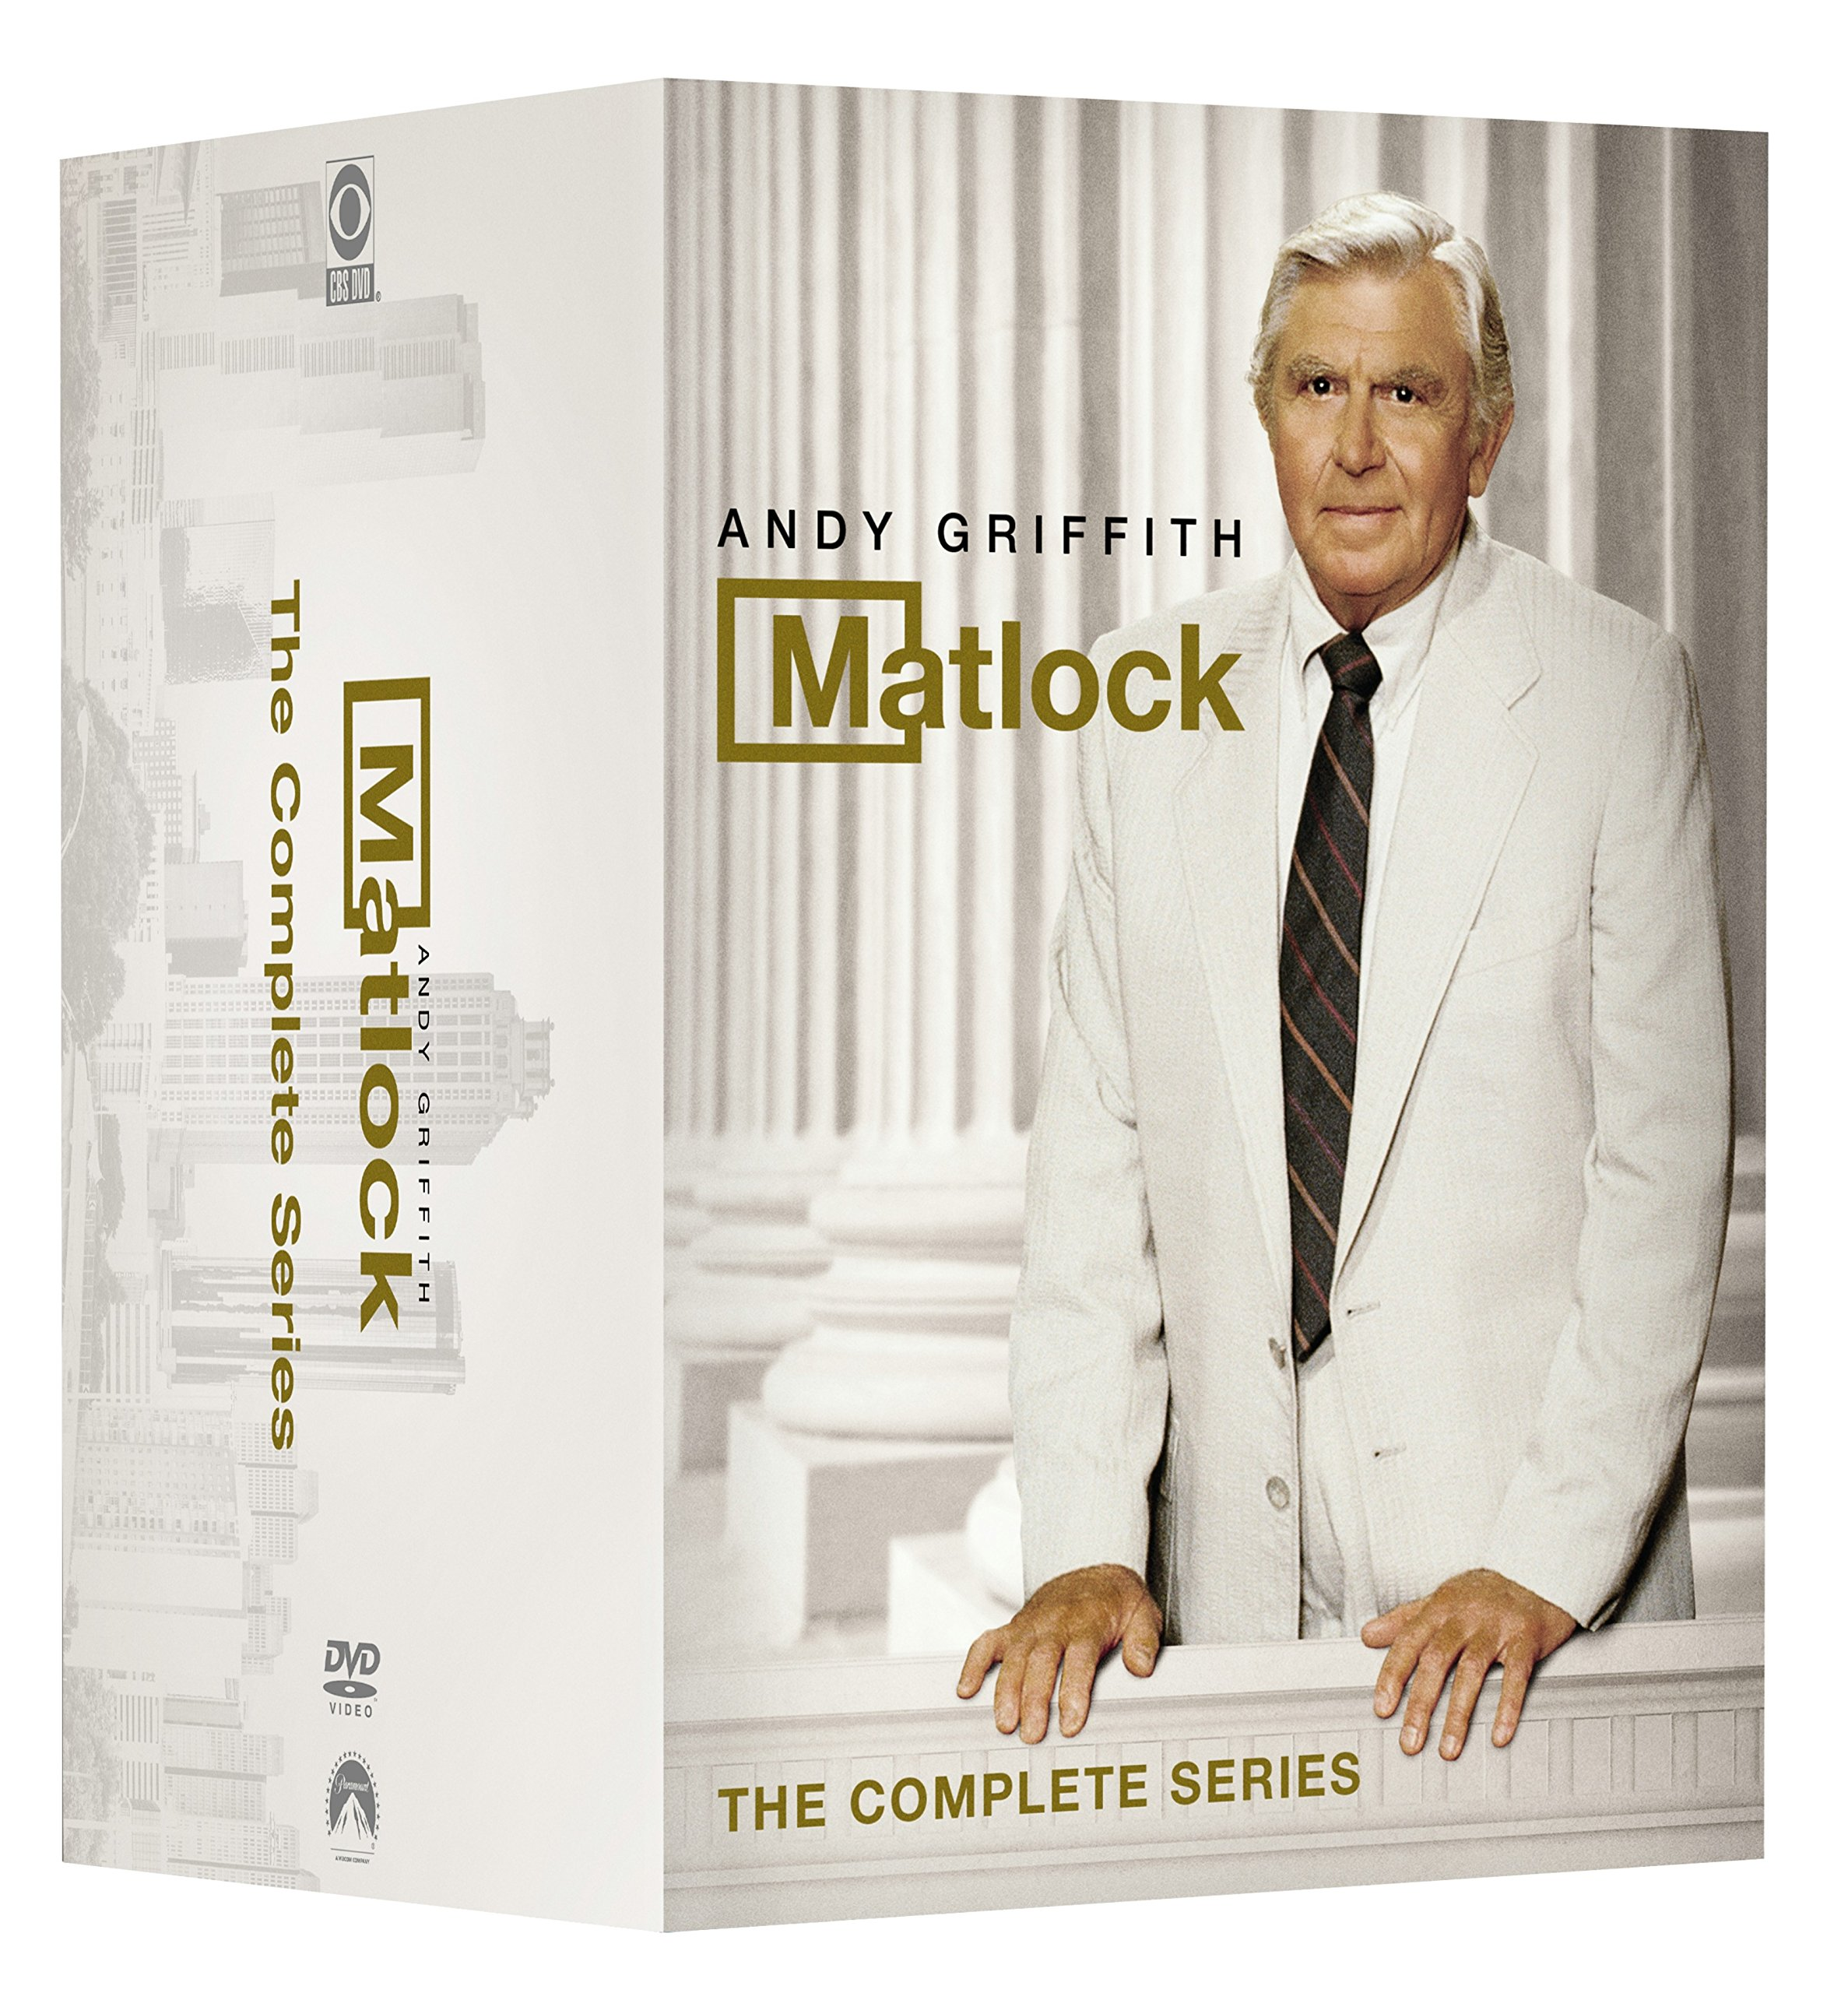 Matlock: The Complete Series by Paramount Home Entertainment